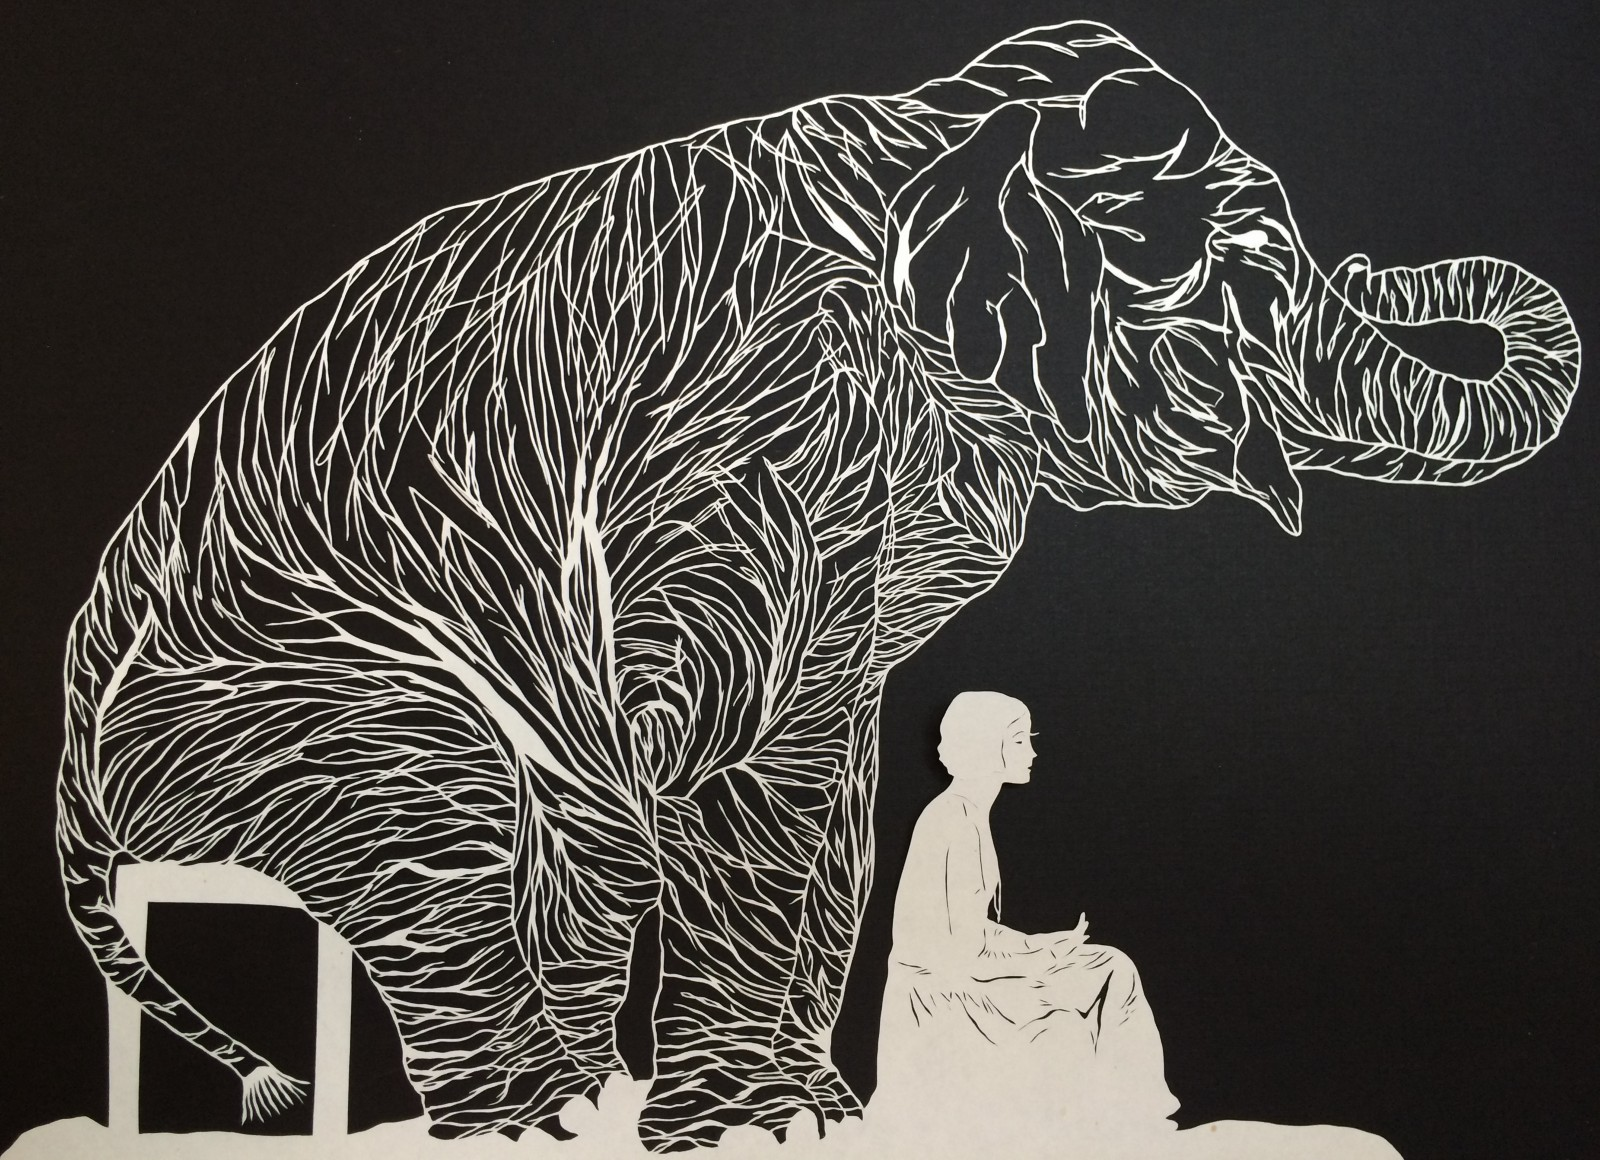 'Remember and Forgive,' a cut-paper piece by Maude White, is on view through Sept. 4 in Buffalo Arts Studio.